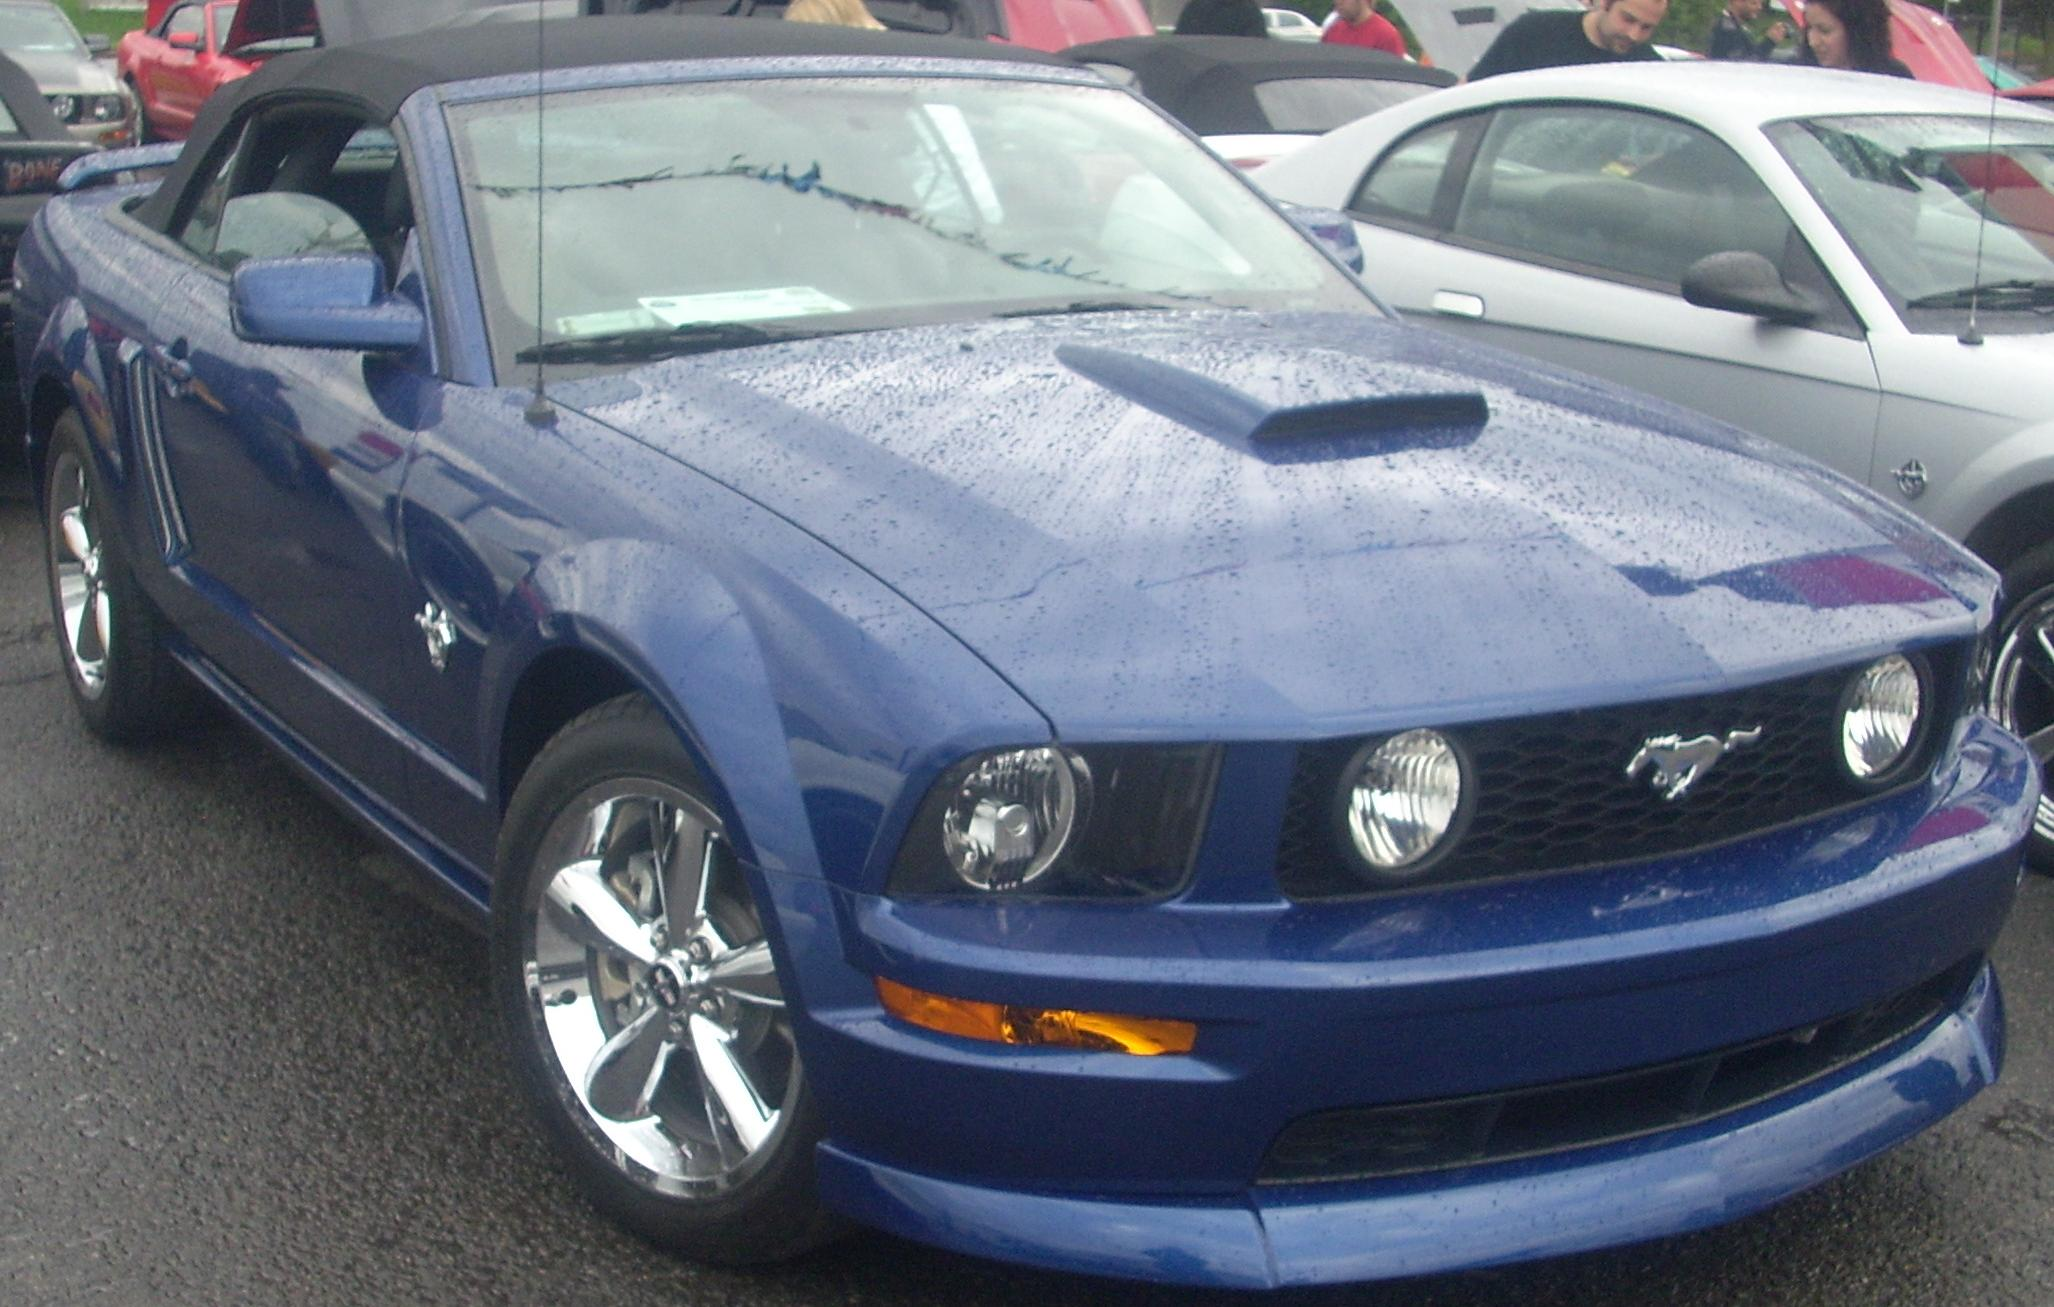 file 2005 09 ford mustang convertible sterling ford jpg wikimedia commons. Black Bedroom Furniture Sets. Home Design Ideas